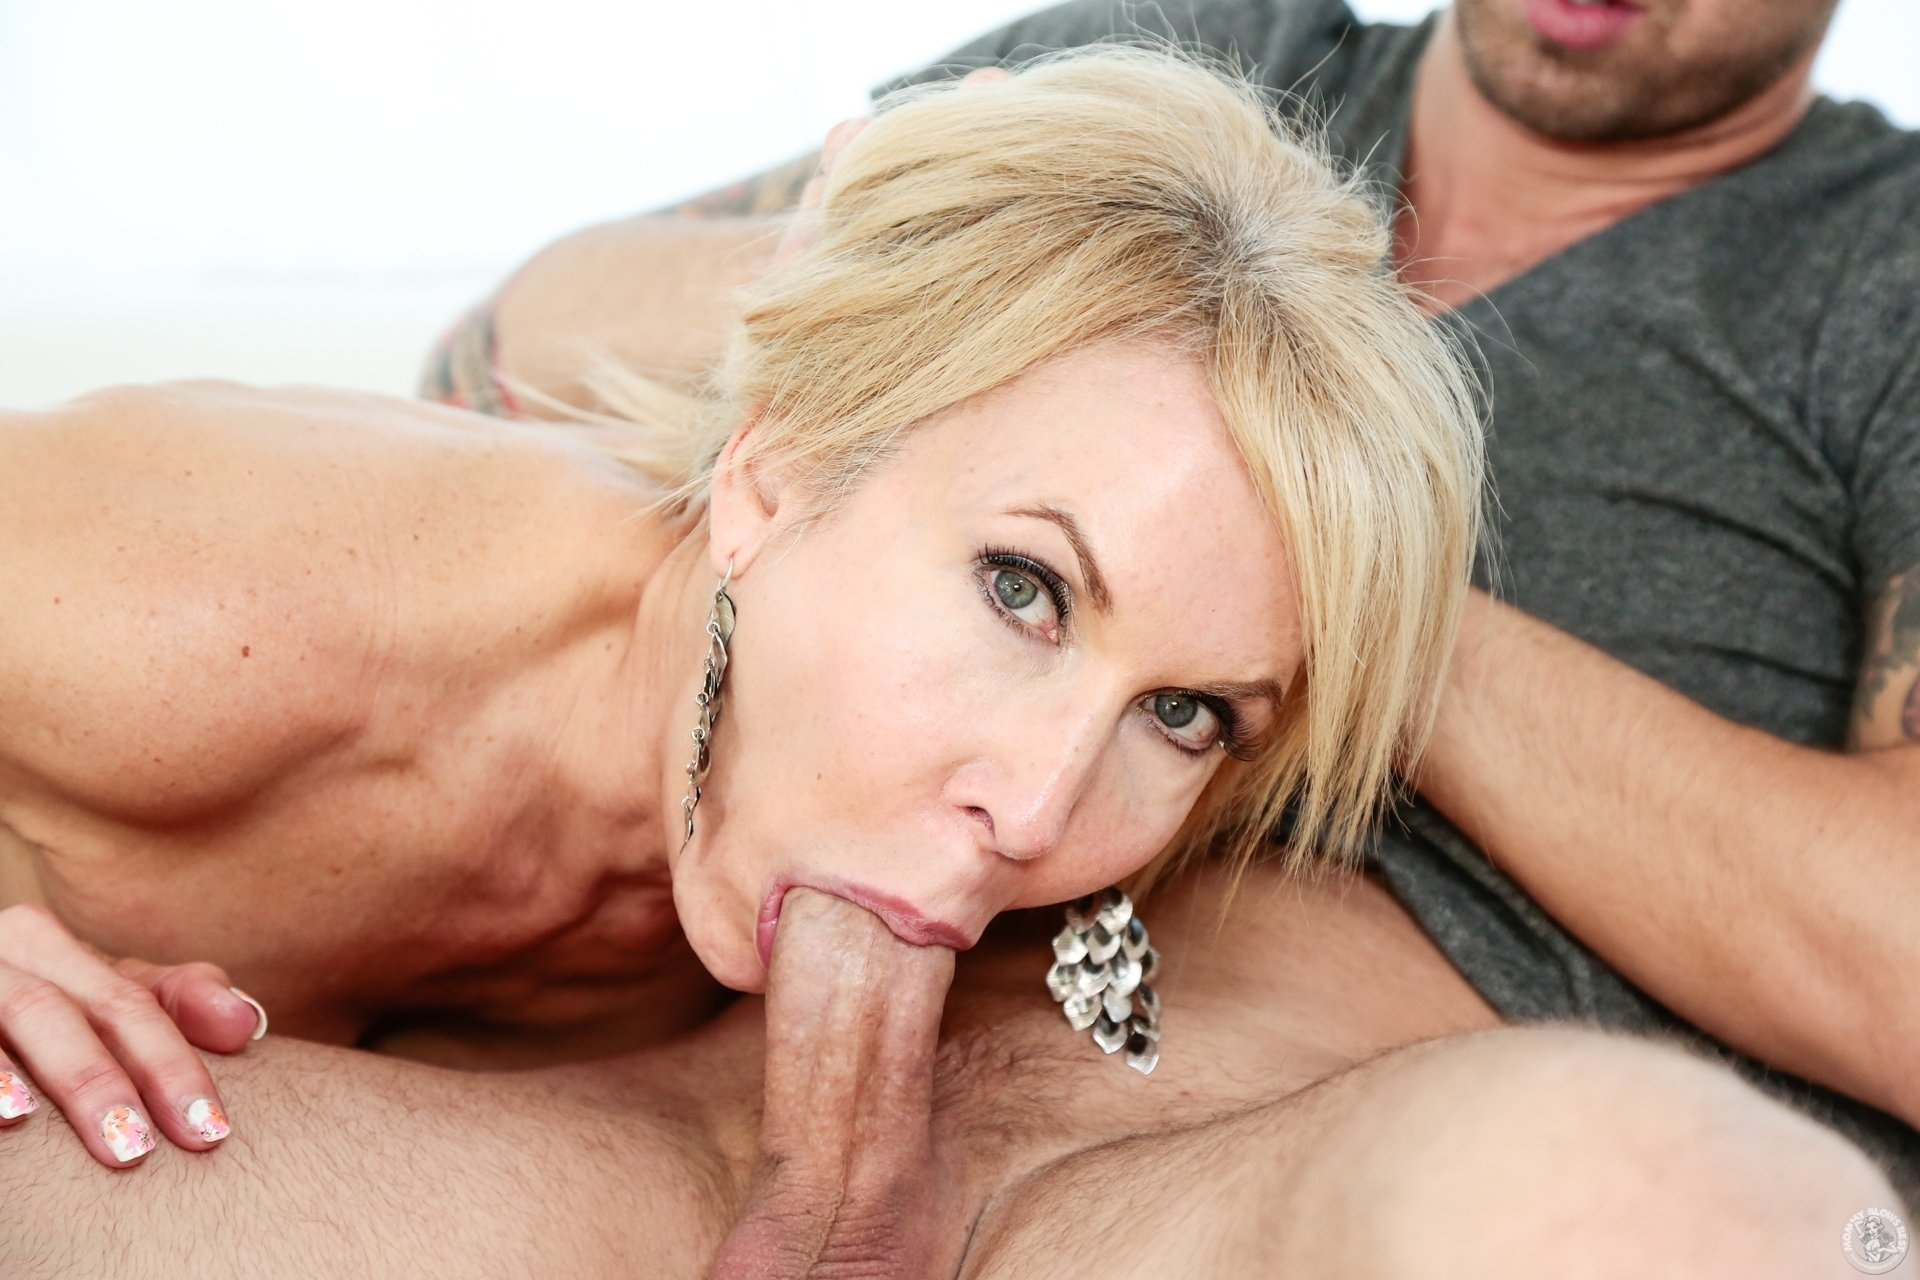 Love mature blowjob com can very popular